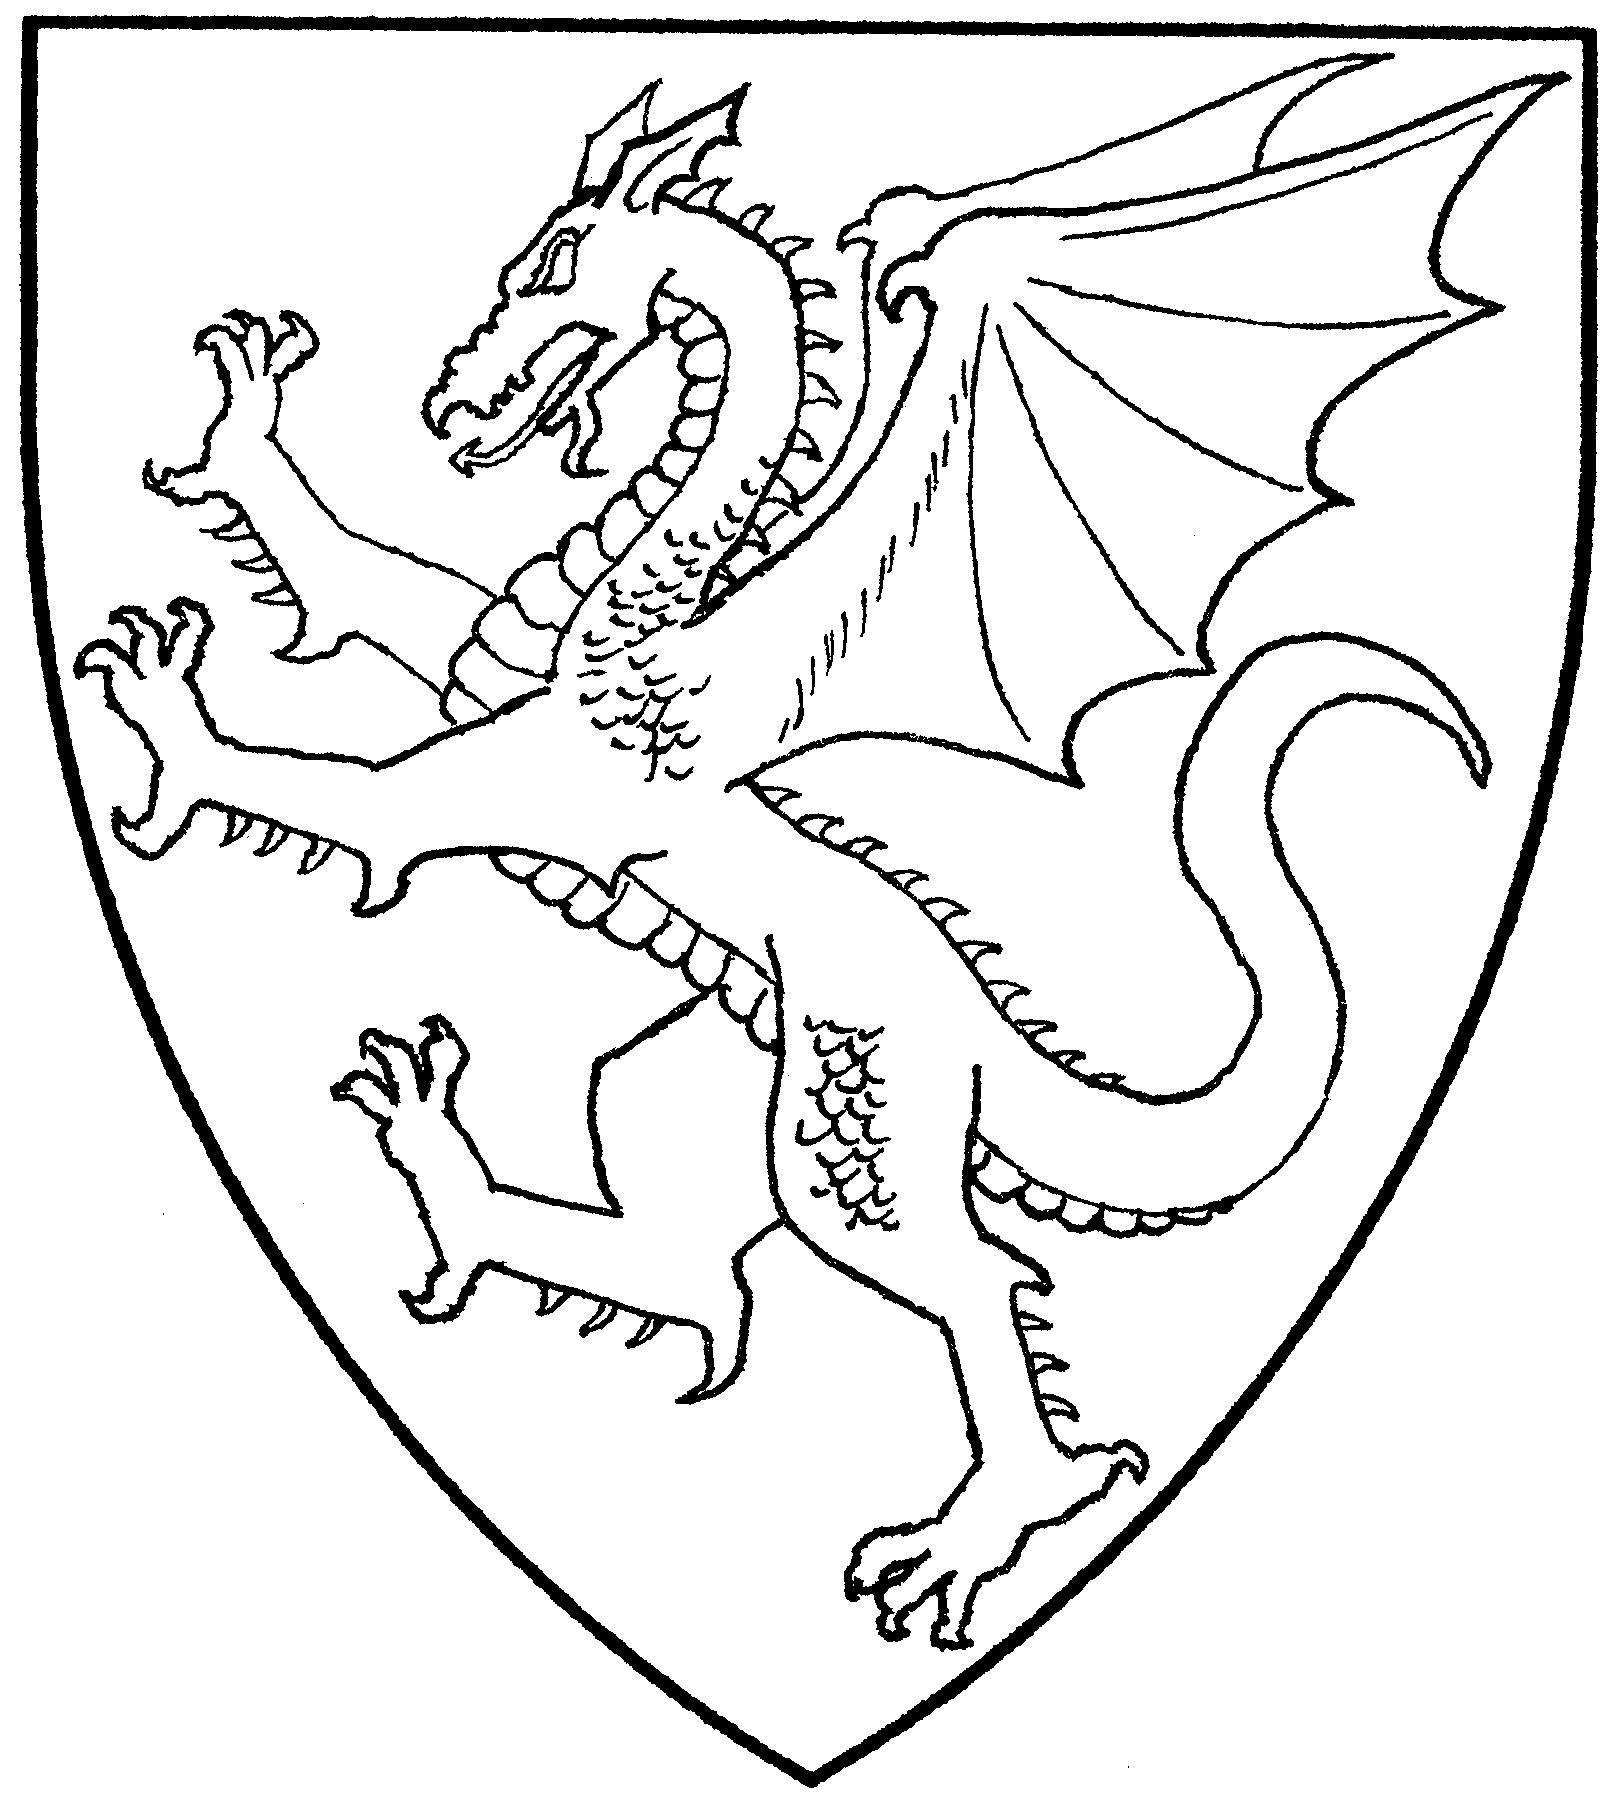 shield coloring page medieval shield coloring pages get coloring pages coloring shield page